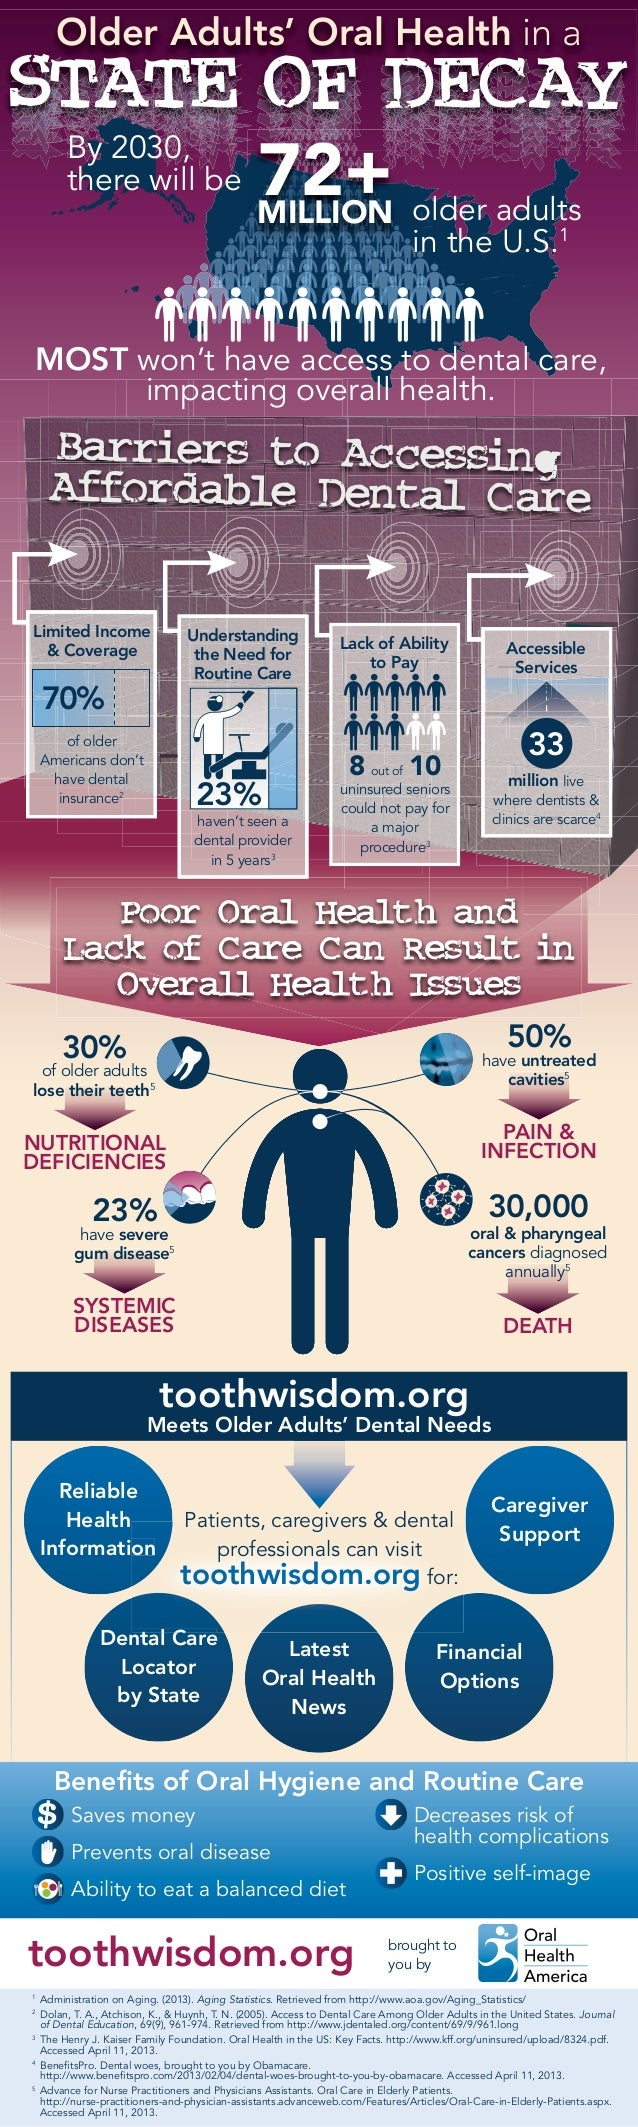 Oral Health and Older Americans